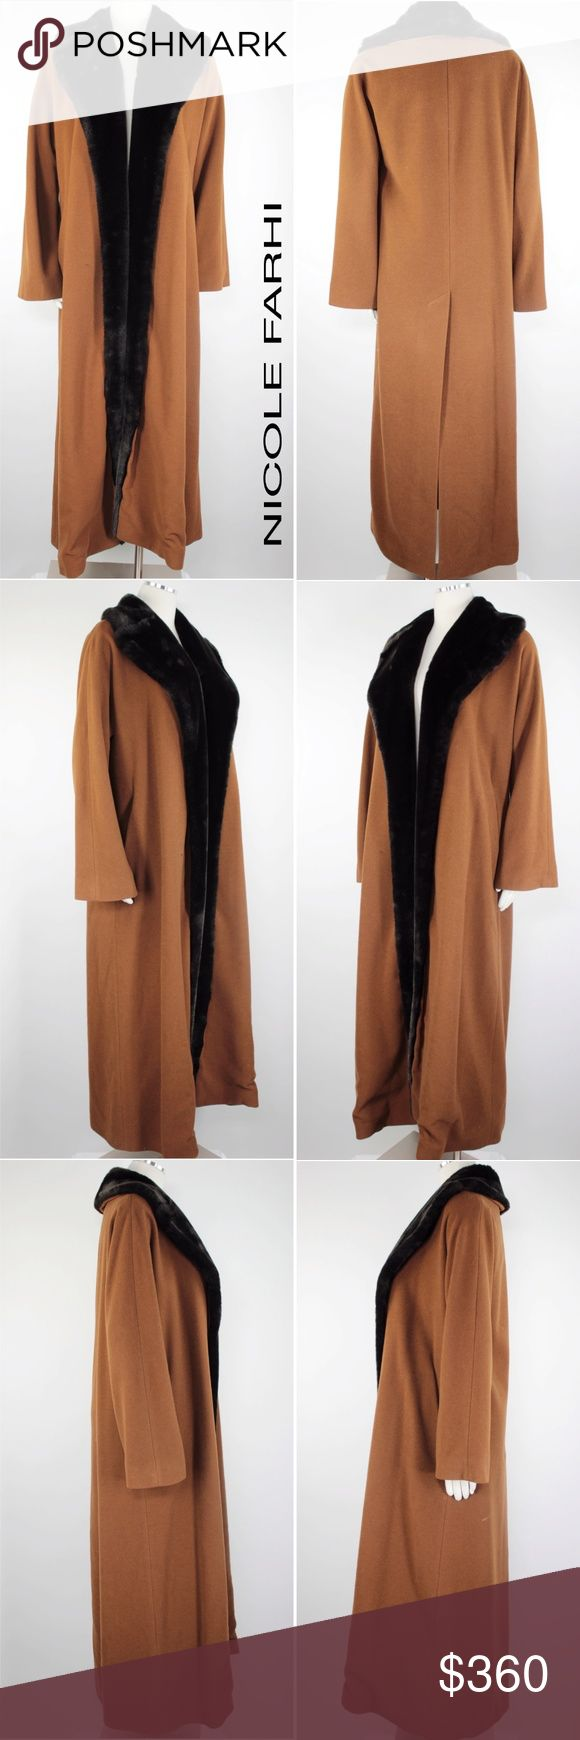 """Nicole Farhi Cashmere Fur Shawl Duster Coat 862 Nicole Farhi Women's Coat Camel Faux Fur Shawl Open Front Long Duster Cashmere Coat.  Fully Lined.  Side Hidden Pockets Retails $1,200 Size: 6 US 34 EU 8 UK Shoulder/Sleeves: 33"""" Raglan  Armpit to Armpit: 21.5""""  Inseam: 30"""" to Kick Vent"""" Length: 54.25""""  Condition: Excellent, Almost New!  Color: Camel Material: 65% Wool, 20% Polyamide, 15% Cashmere Care: Dry Clean WT: 4 CSKU: 862; 5 All measurements are approximate and taken laying flat…"""